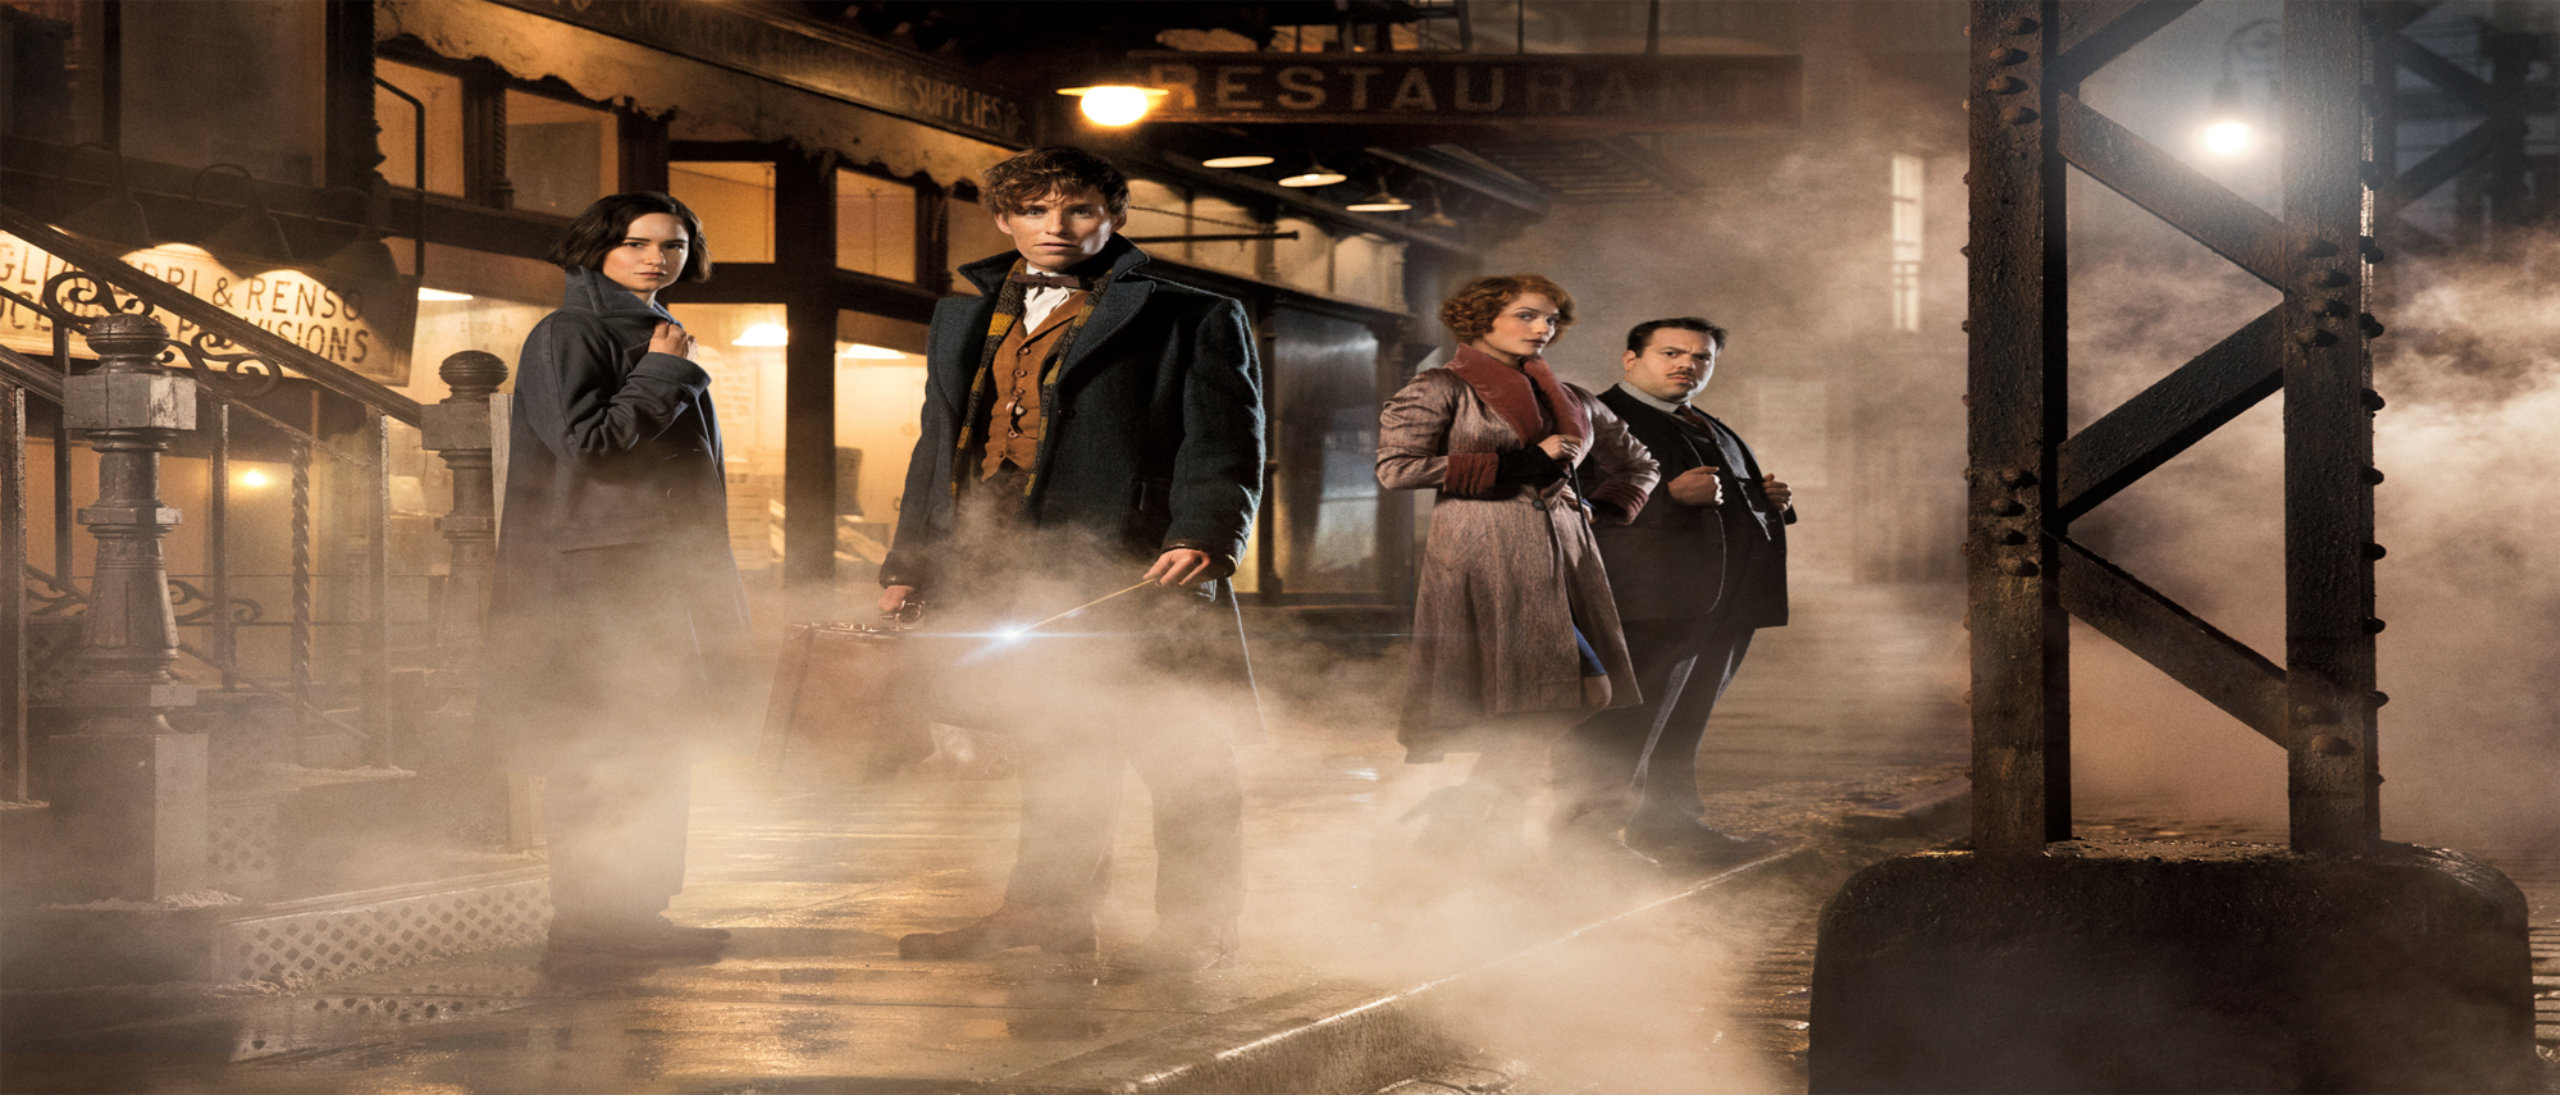 001 Fantastic Beasts And Where To Find Them 15021614 St 2 S High